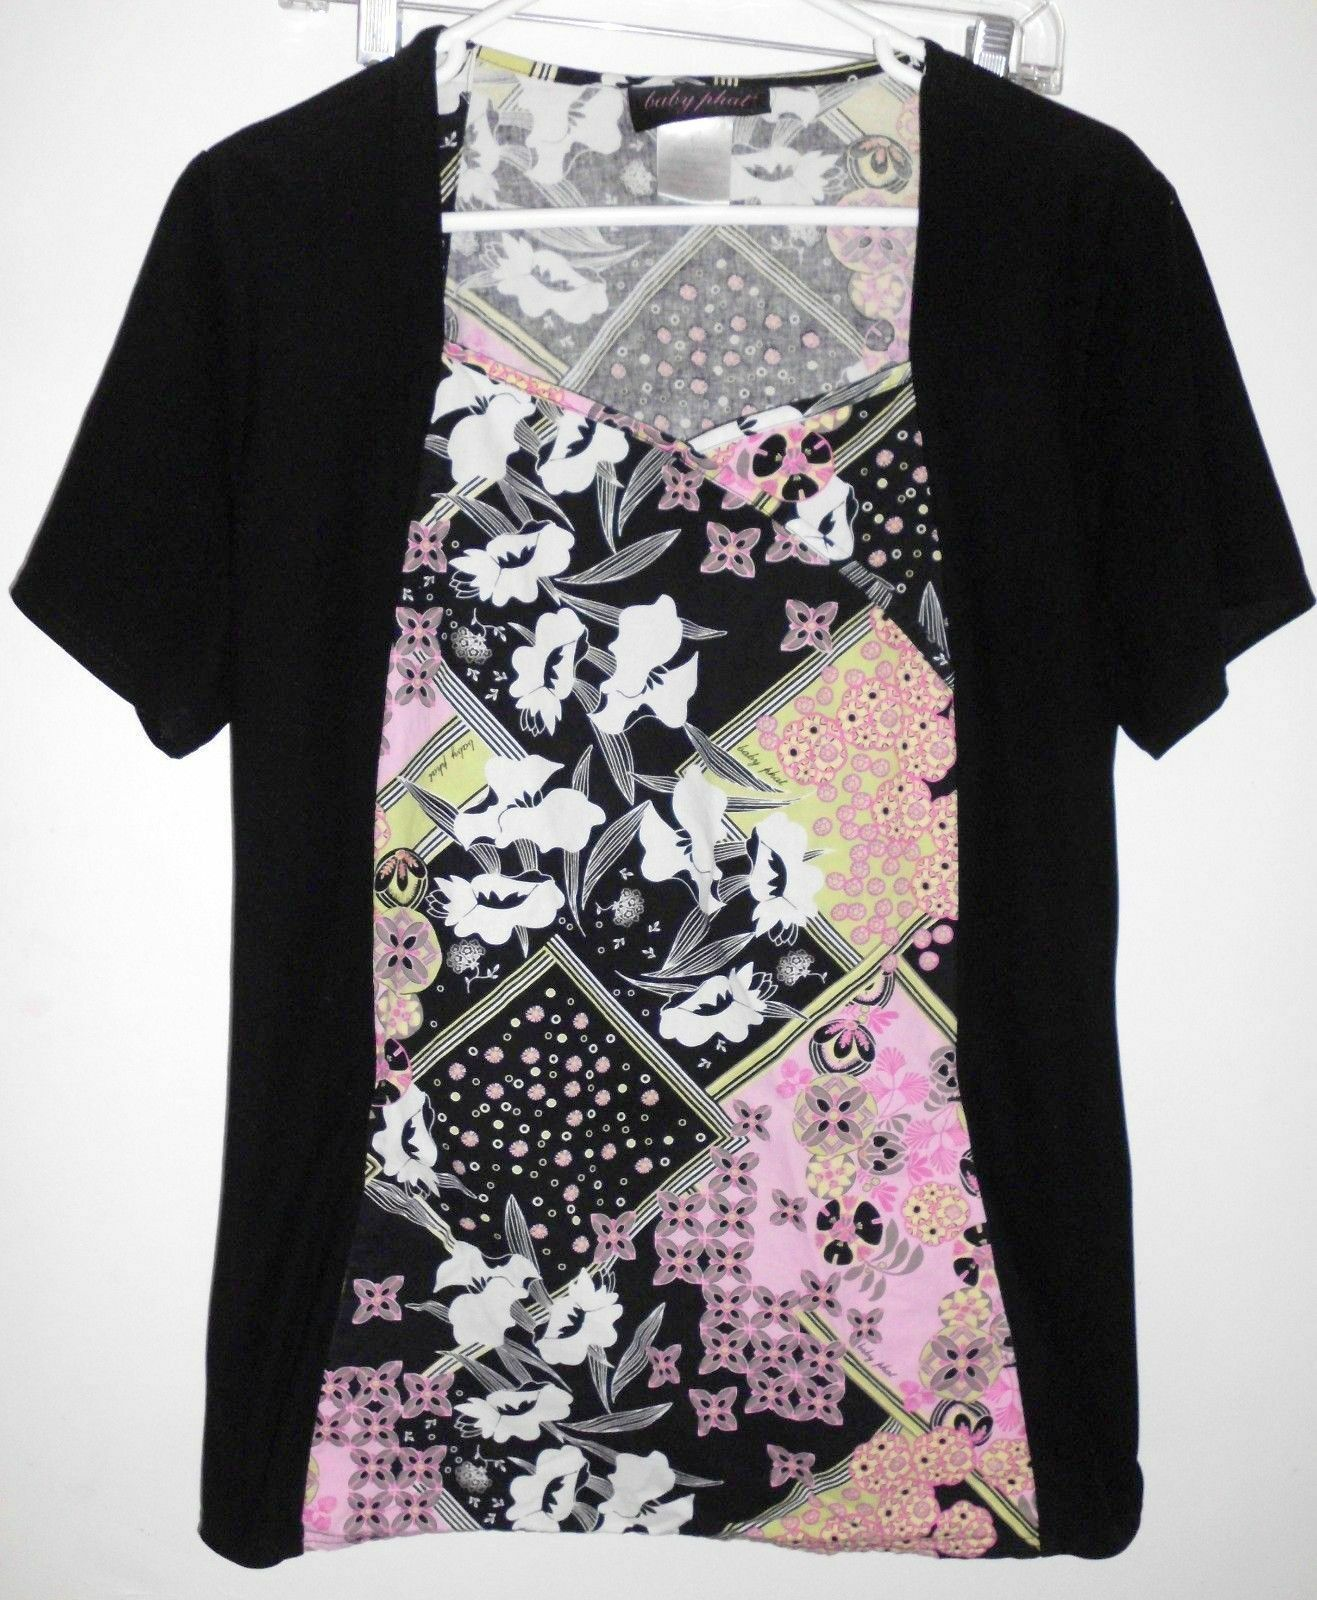 Primary image for BABY PHAT Top LARGE Women Black Pink Green Floral Short Sleeve Stretch Shirt